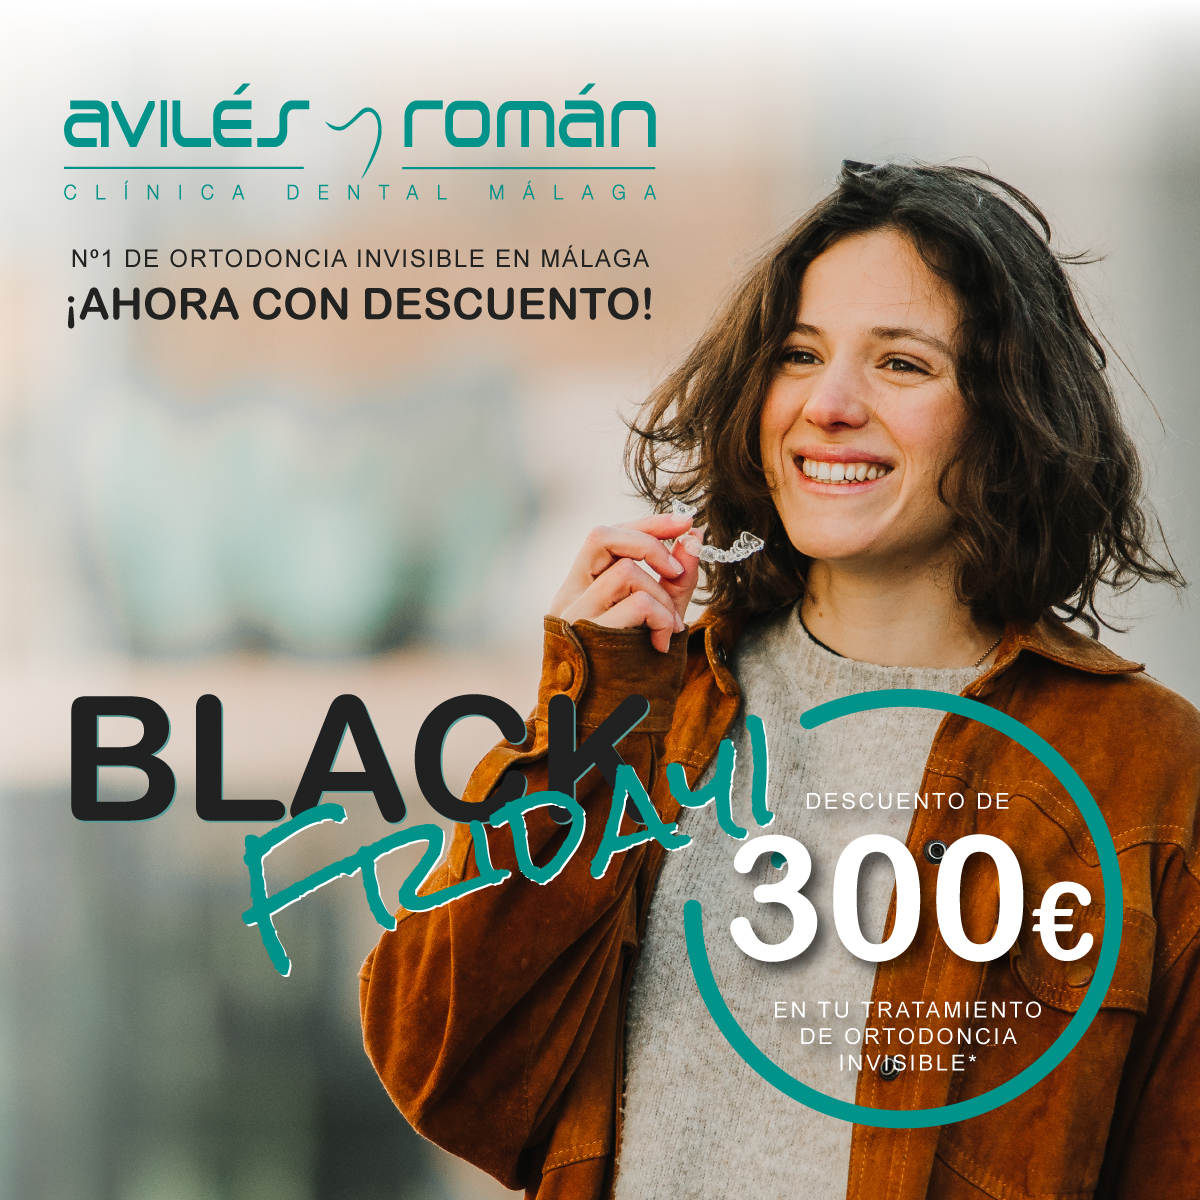 ¡Black Friday en Ortodoncia Invisible!